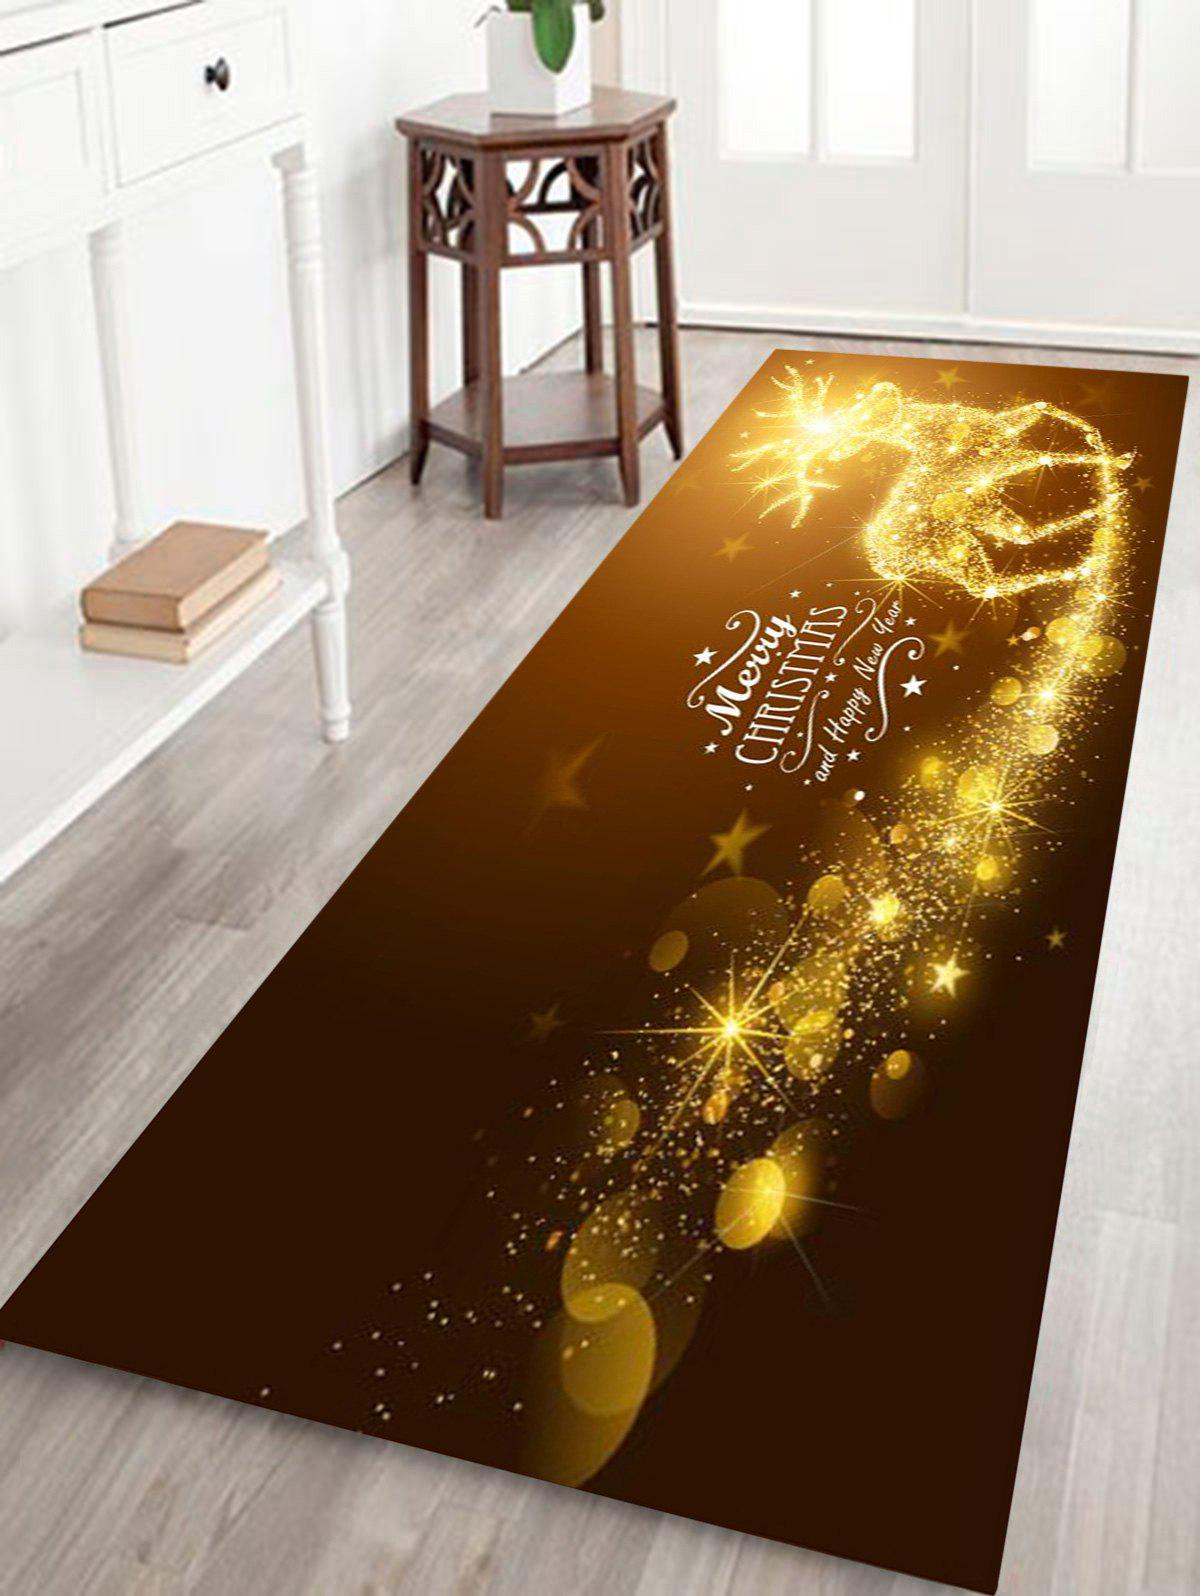 Sparkling Christmas Deer Print Coral Fleece Antiskid Bath MatHOME<br><br>Size: W16 INCH * L47 INCH; Color: GOLD BROWN; Products Type: Bath rugs; Materials: Coral FLeece; Pattern: Elk,Letter; Style: Festival; Shape: Rectangular; Package Contents: 1 x Rug;